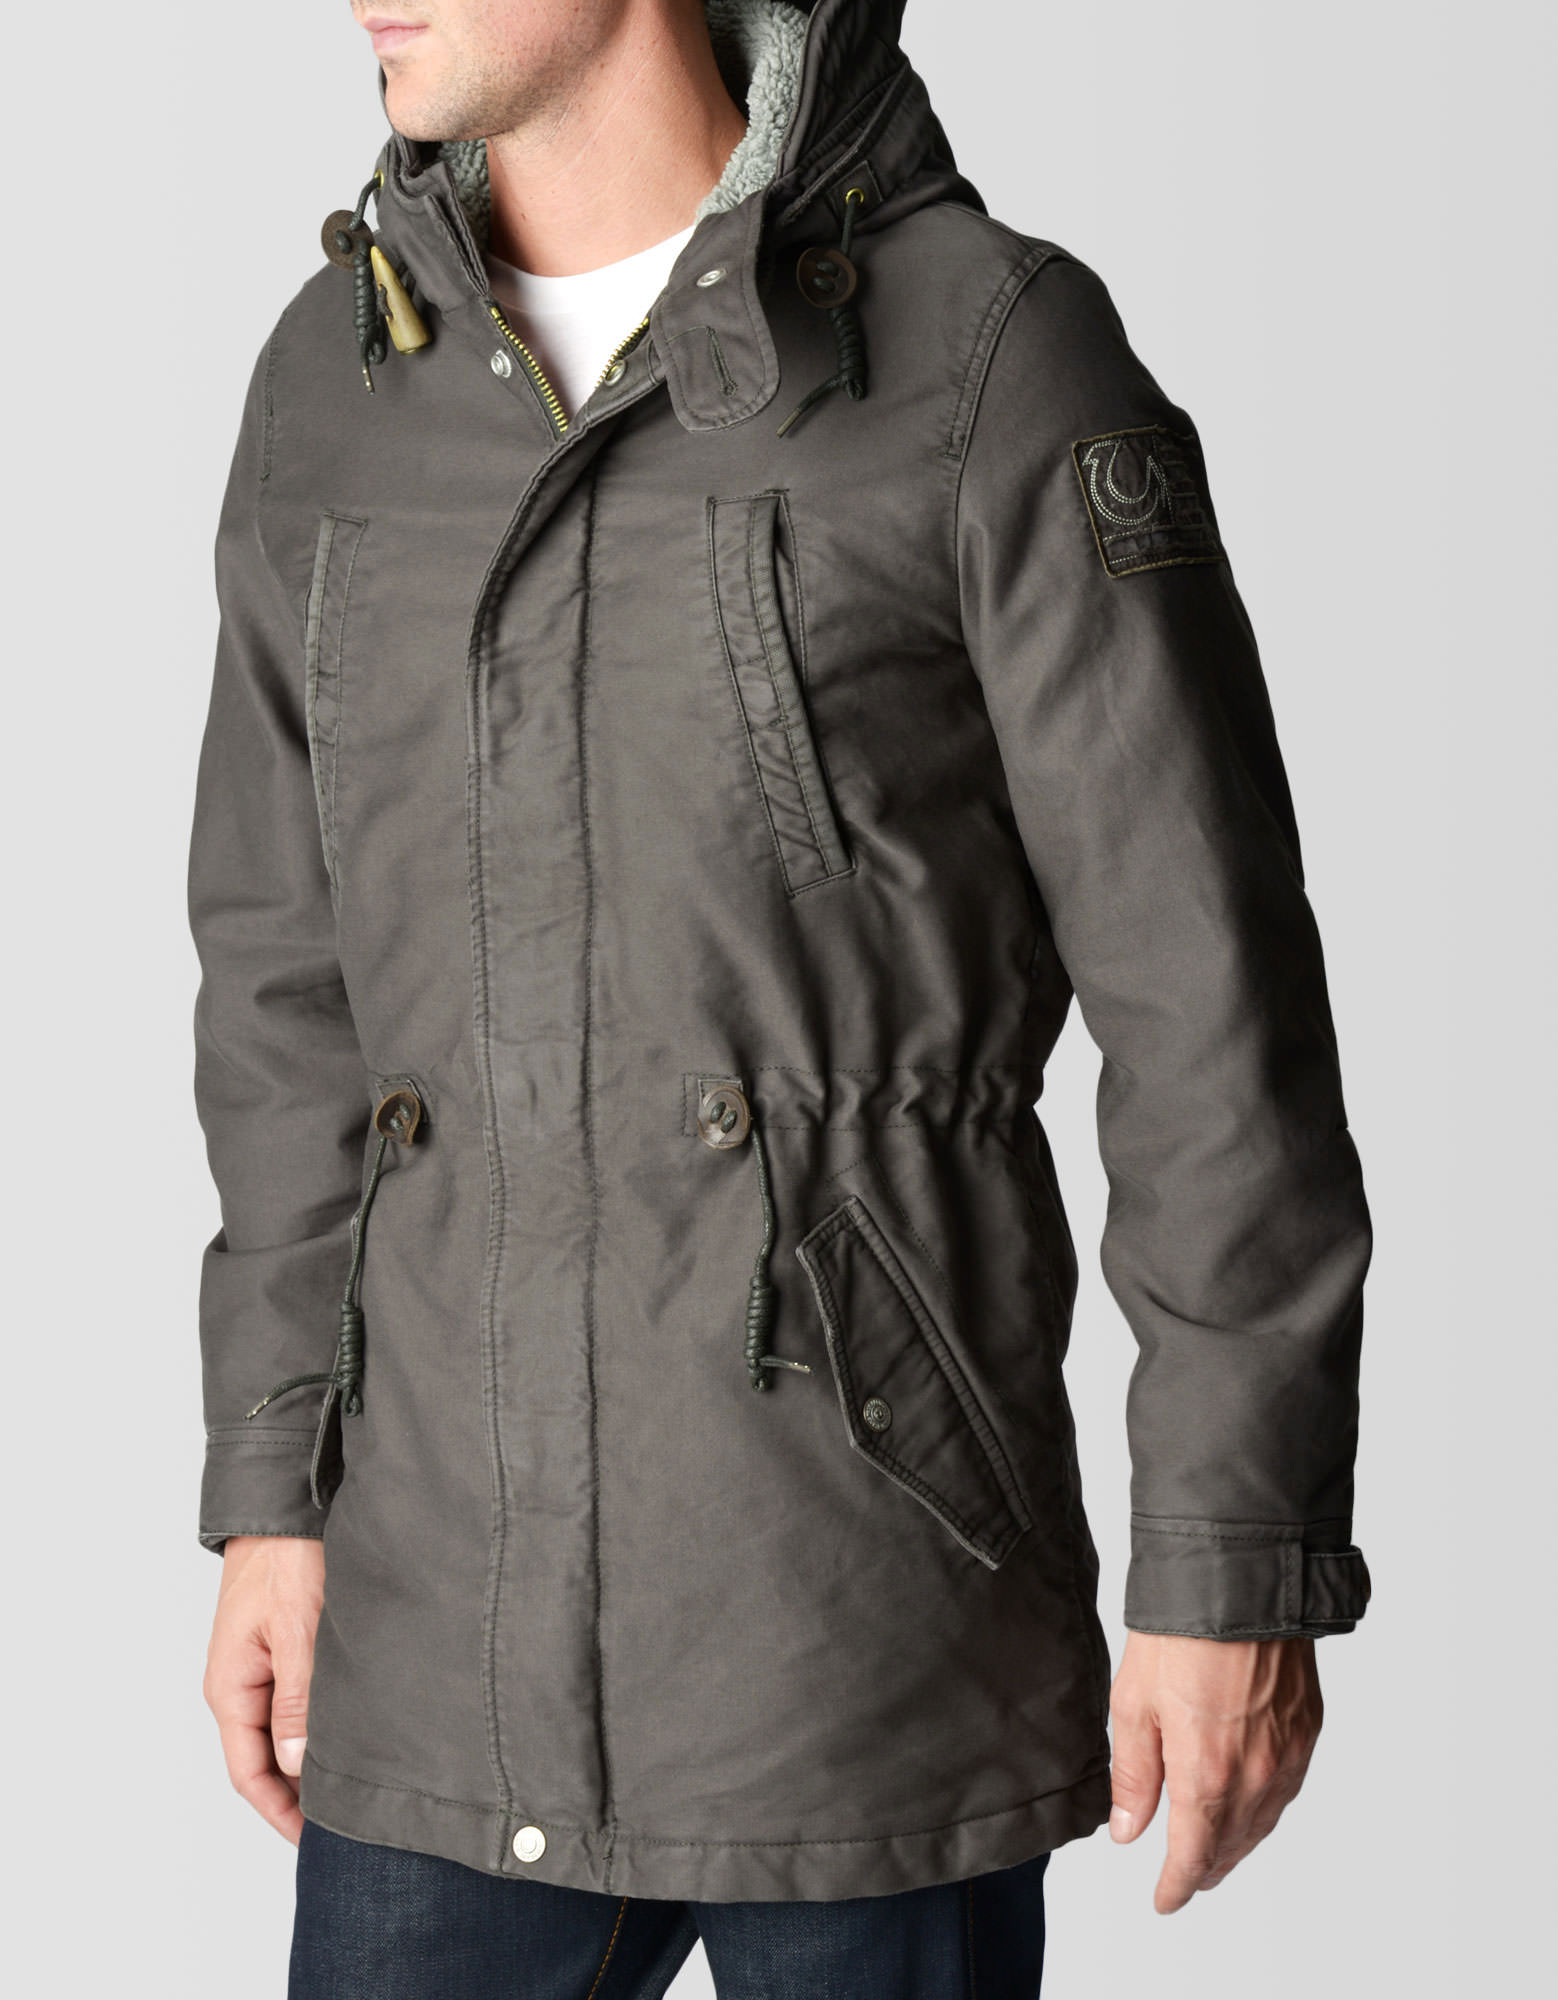 mens parka coats back to jackets vmepffo